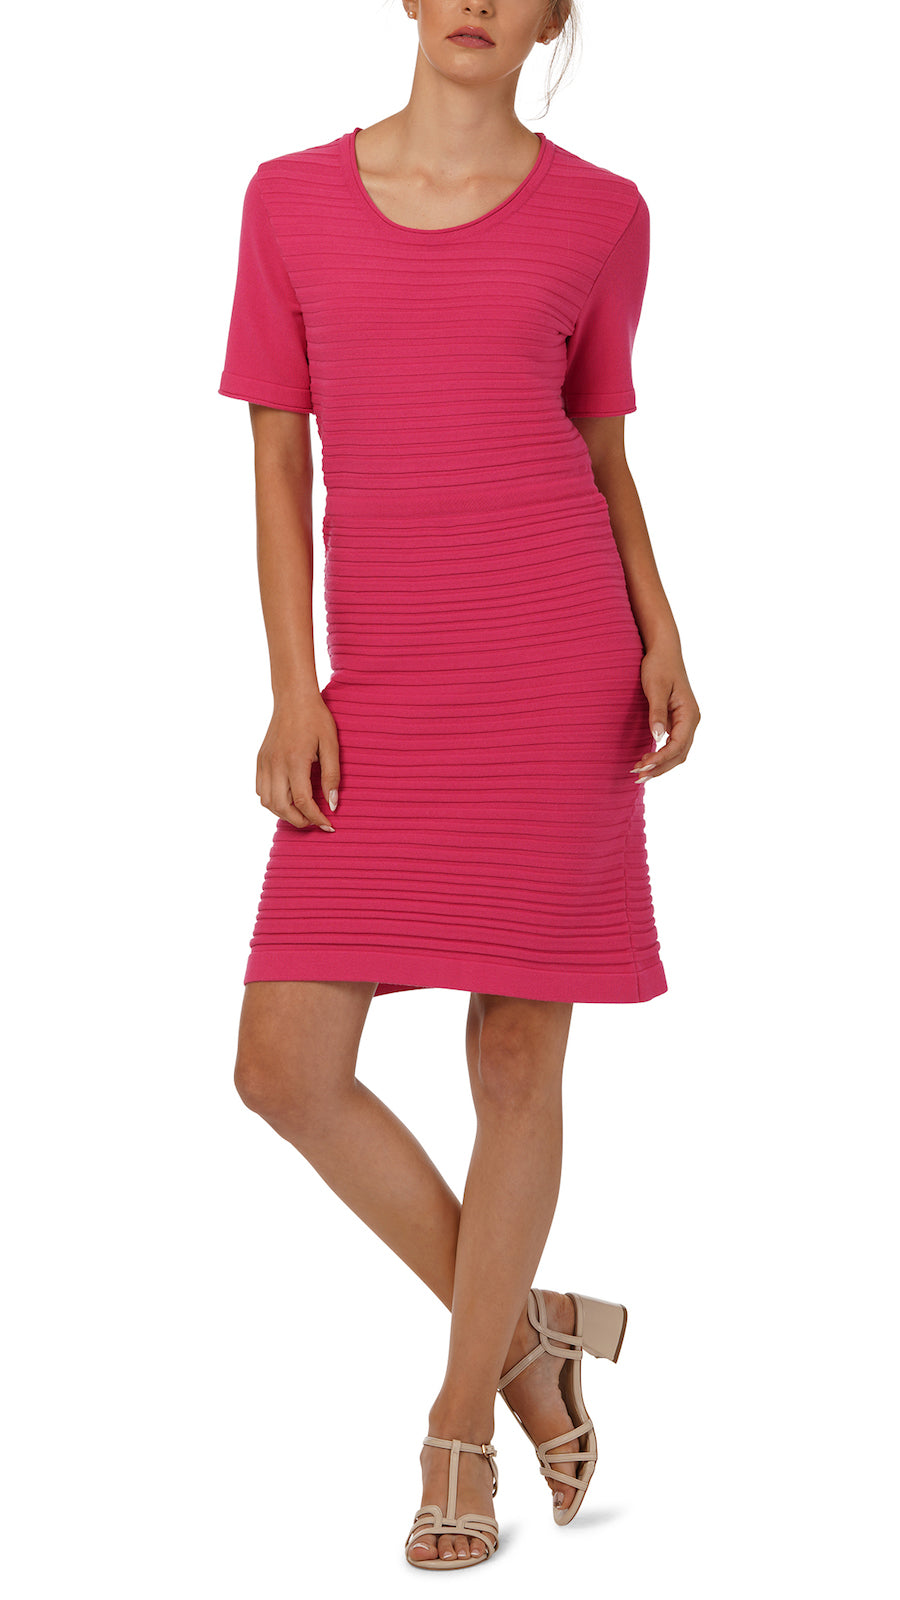 Anita Horizontal Rib Knit Dress, Pink